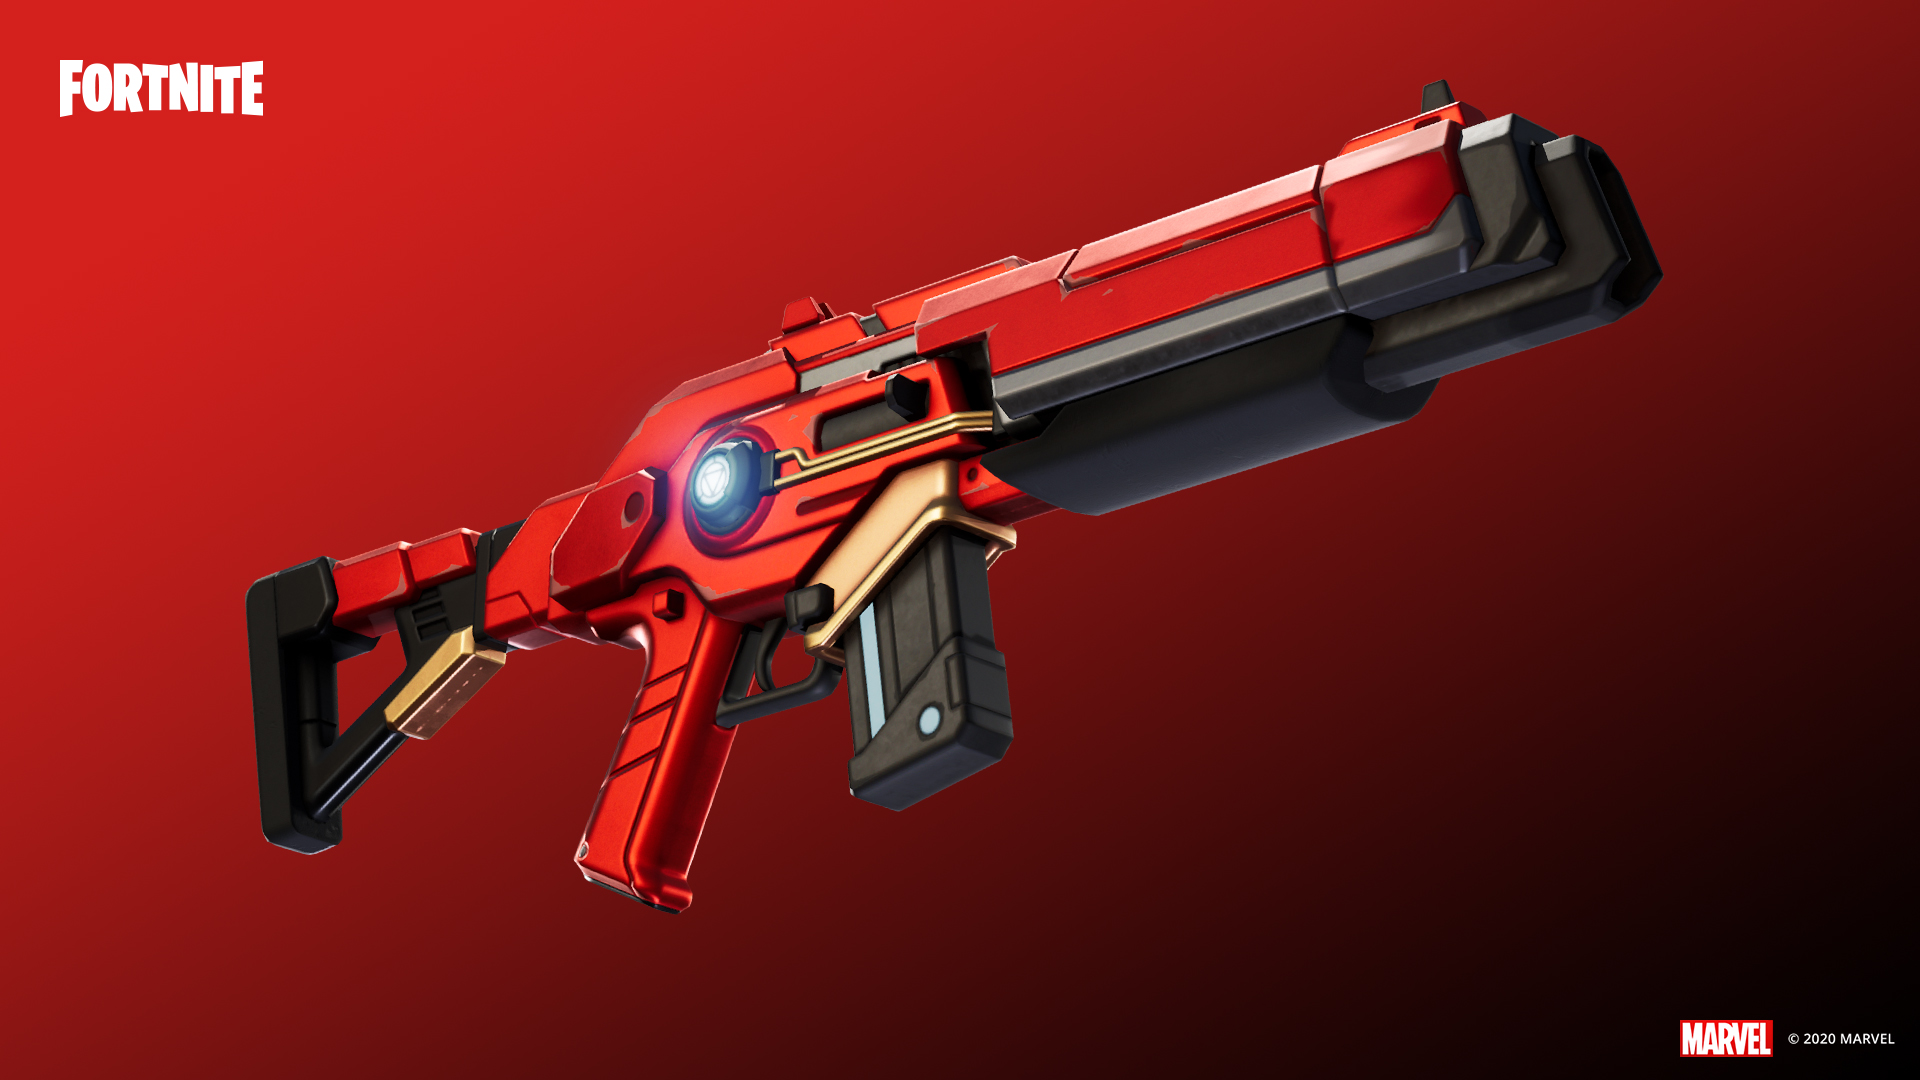 Fucile Energetico Stark Industries Fortnite